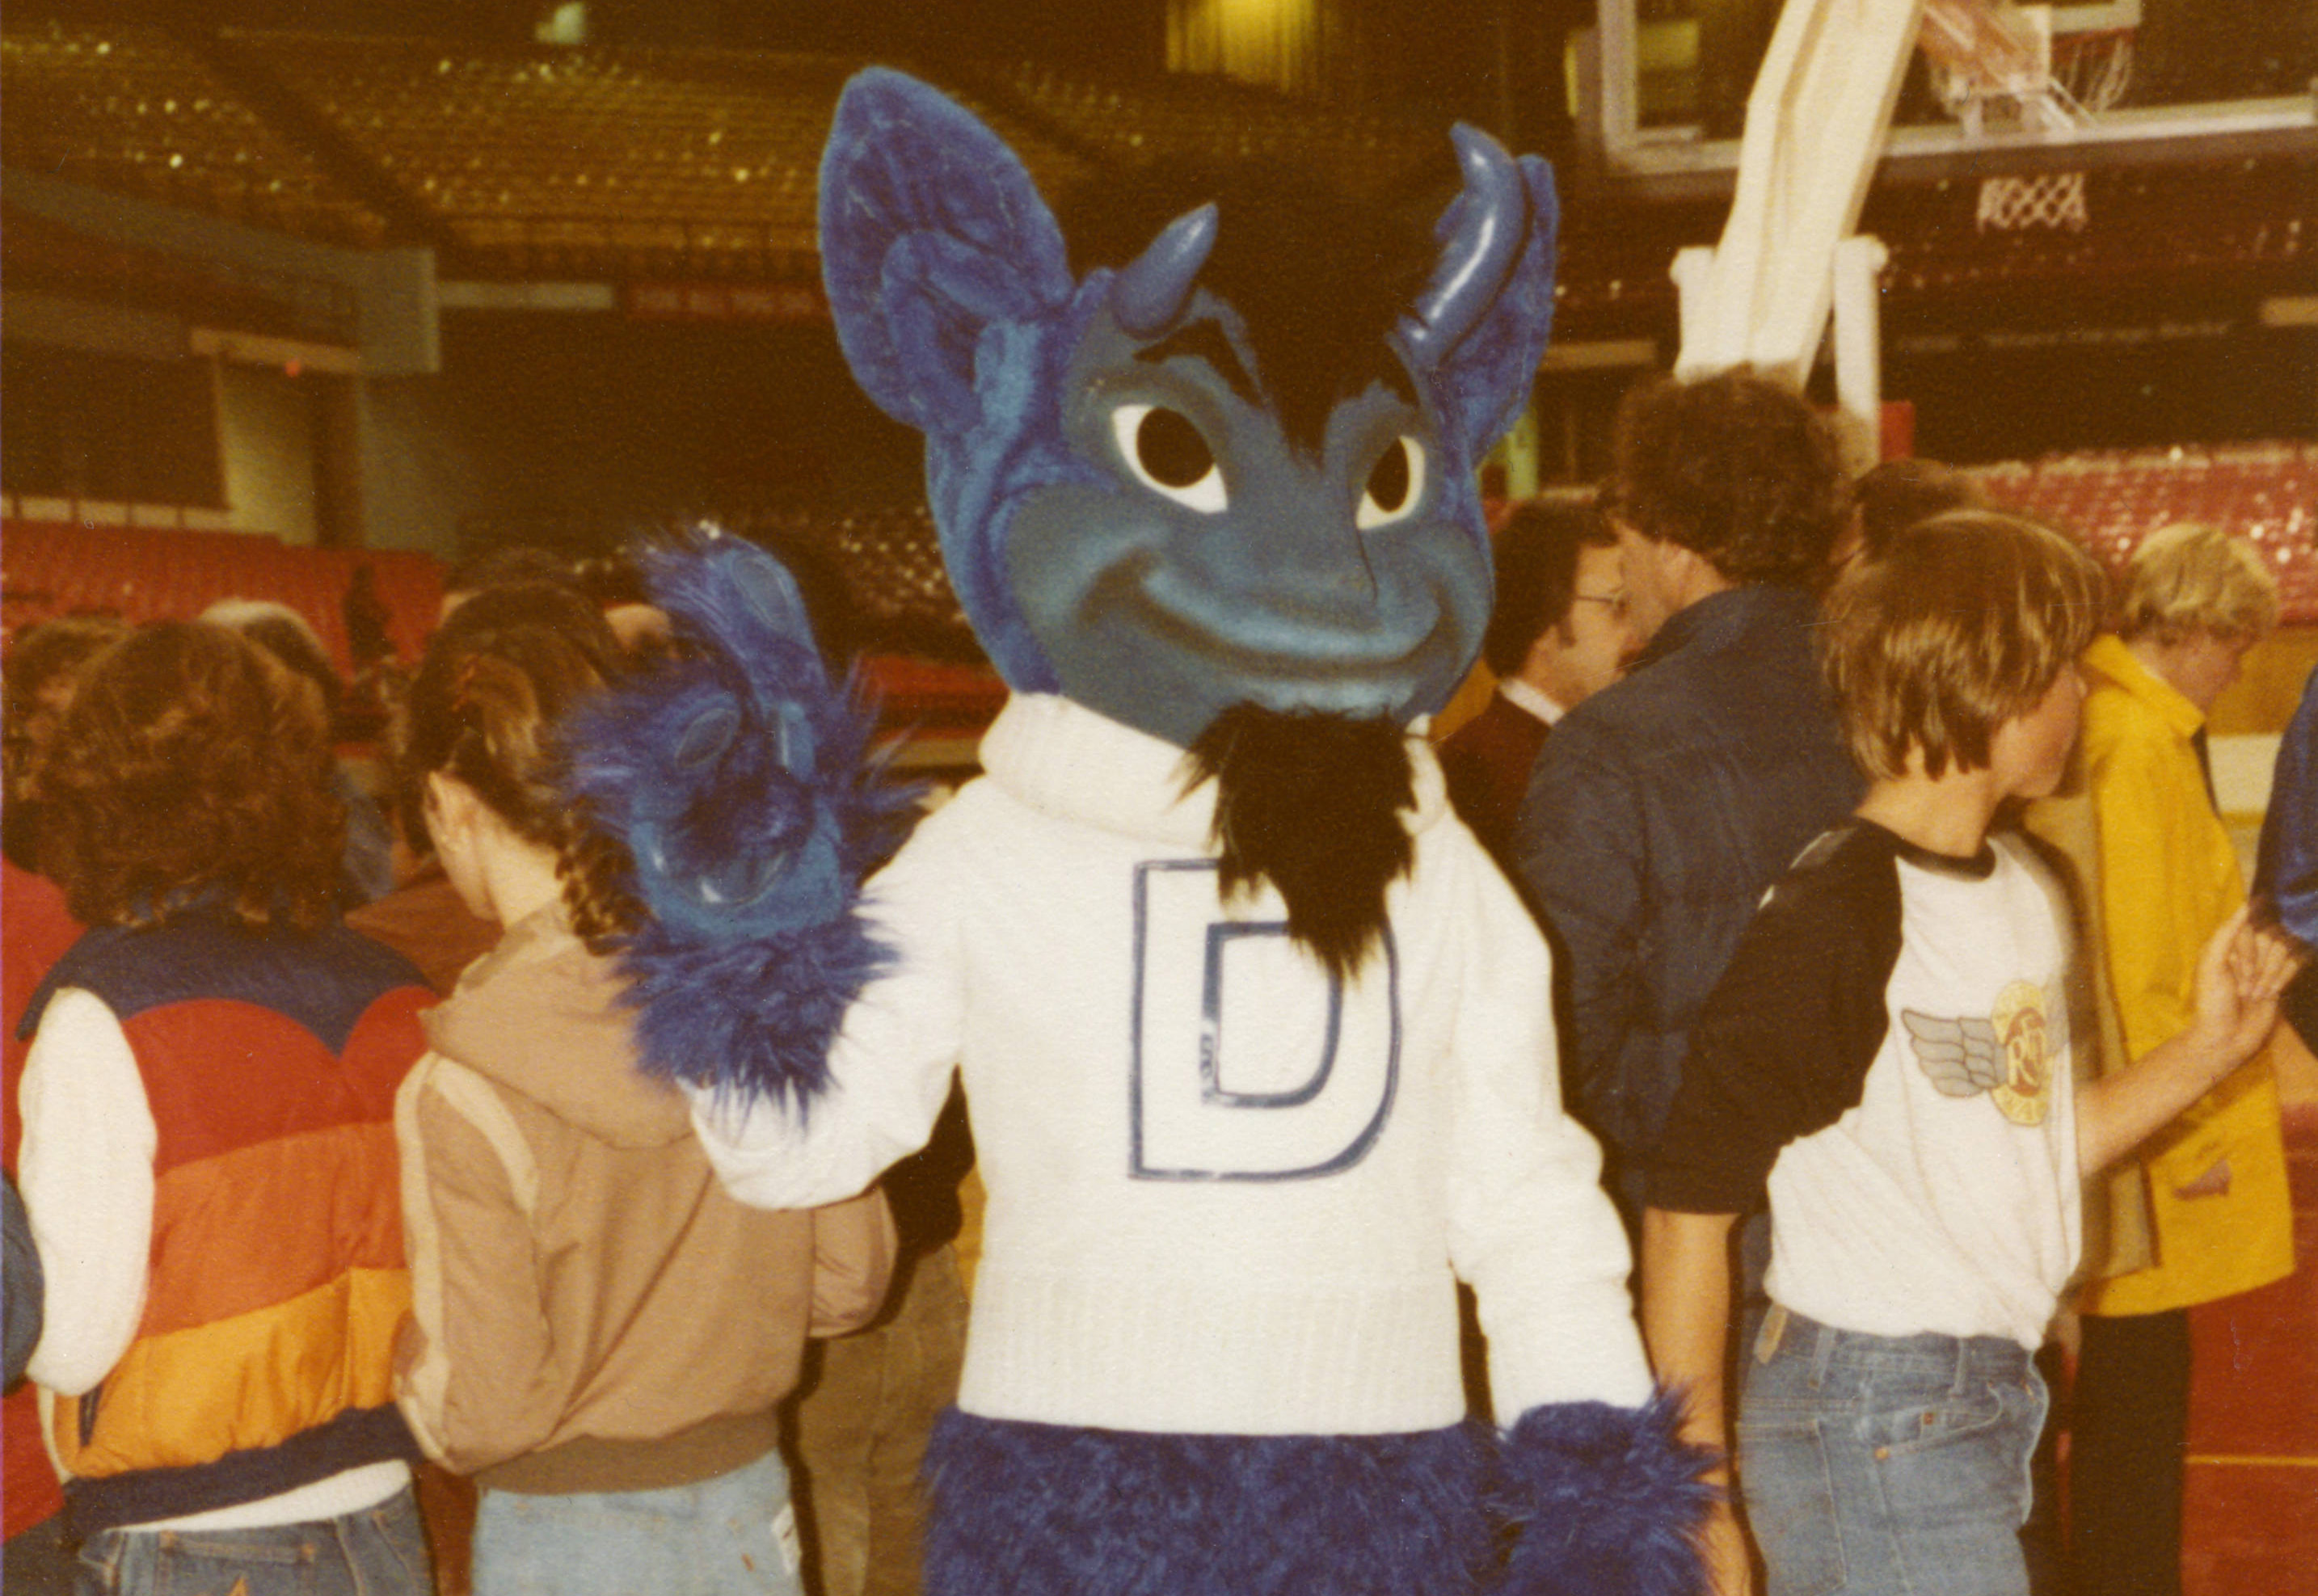 DePaul_mascot_with_students_on_a_basketb